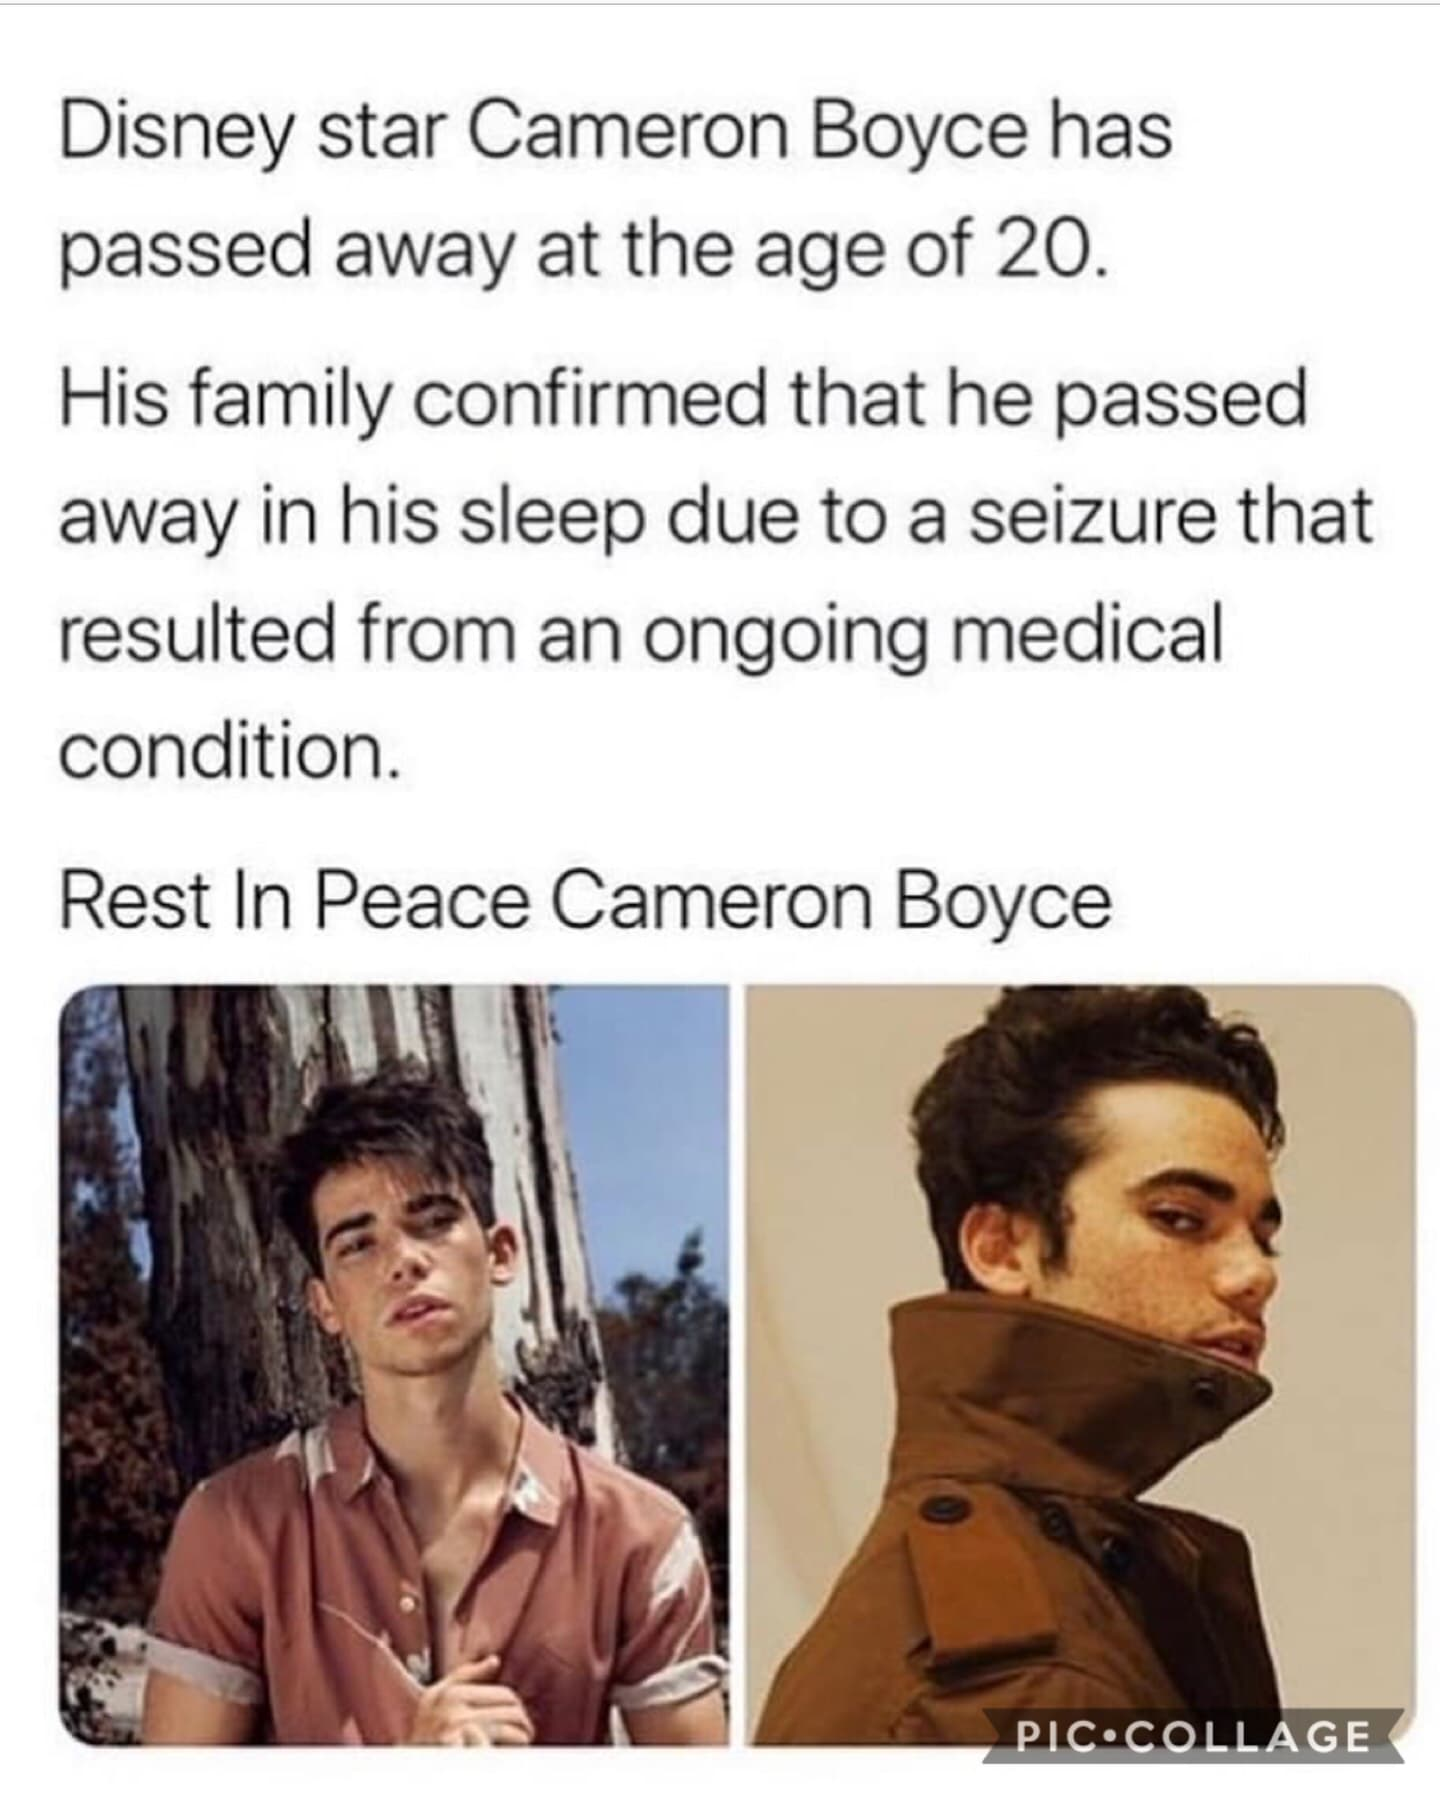 ✊🏻🤧❤️rest in peace, you are a true legend❤️🤧✊🏻you played such a big role in my childhood and were my favorite character from descendants. We're gonna miss you 💕